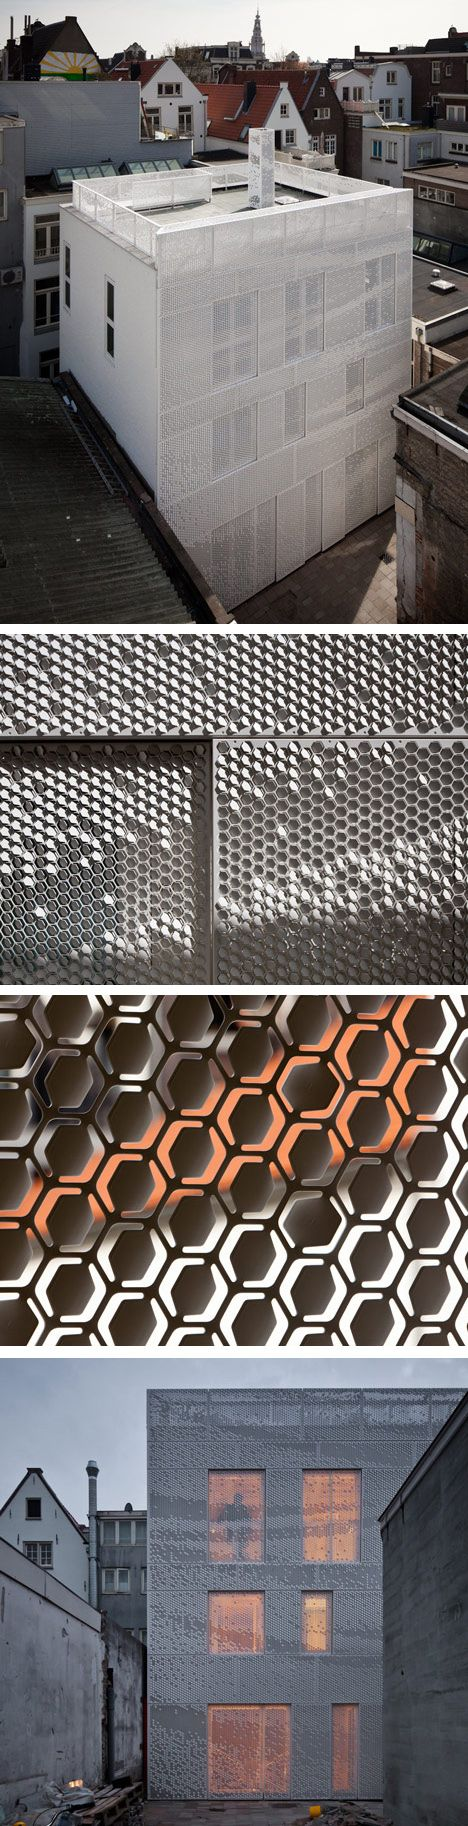 Bent by Chris Kabel with Abbink X de Haas. A facade of perforated hexagons that catches the light like a hanging sheet of fabric, If they are bent upwards they reflect the light and bending downwards they become darker pixels.